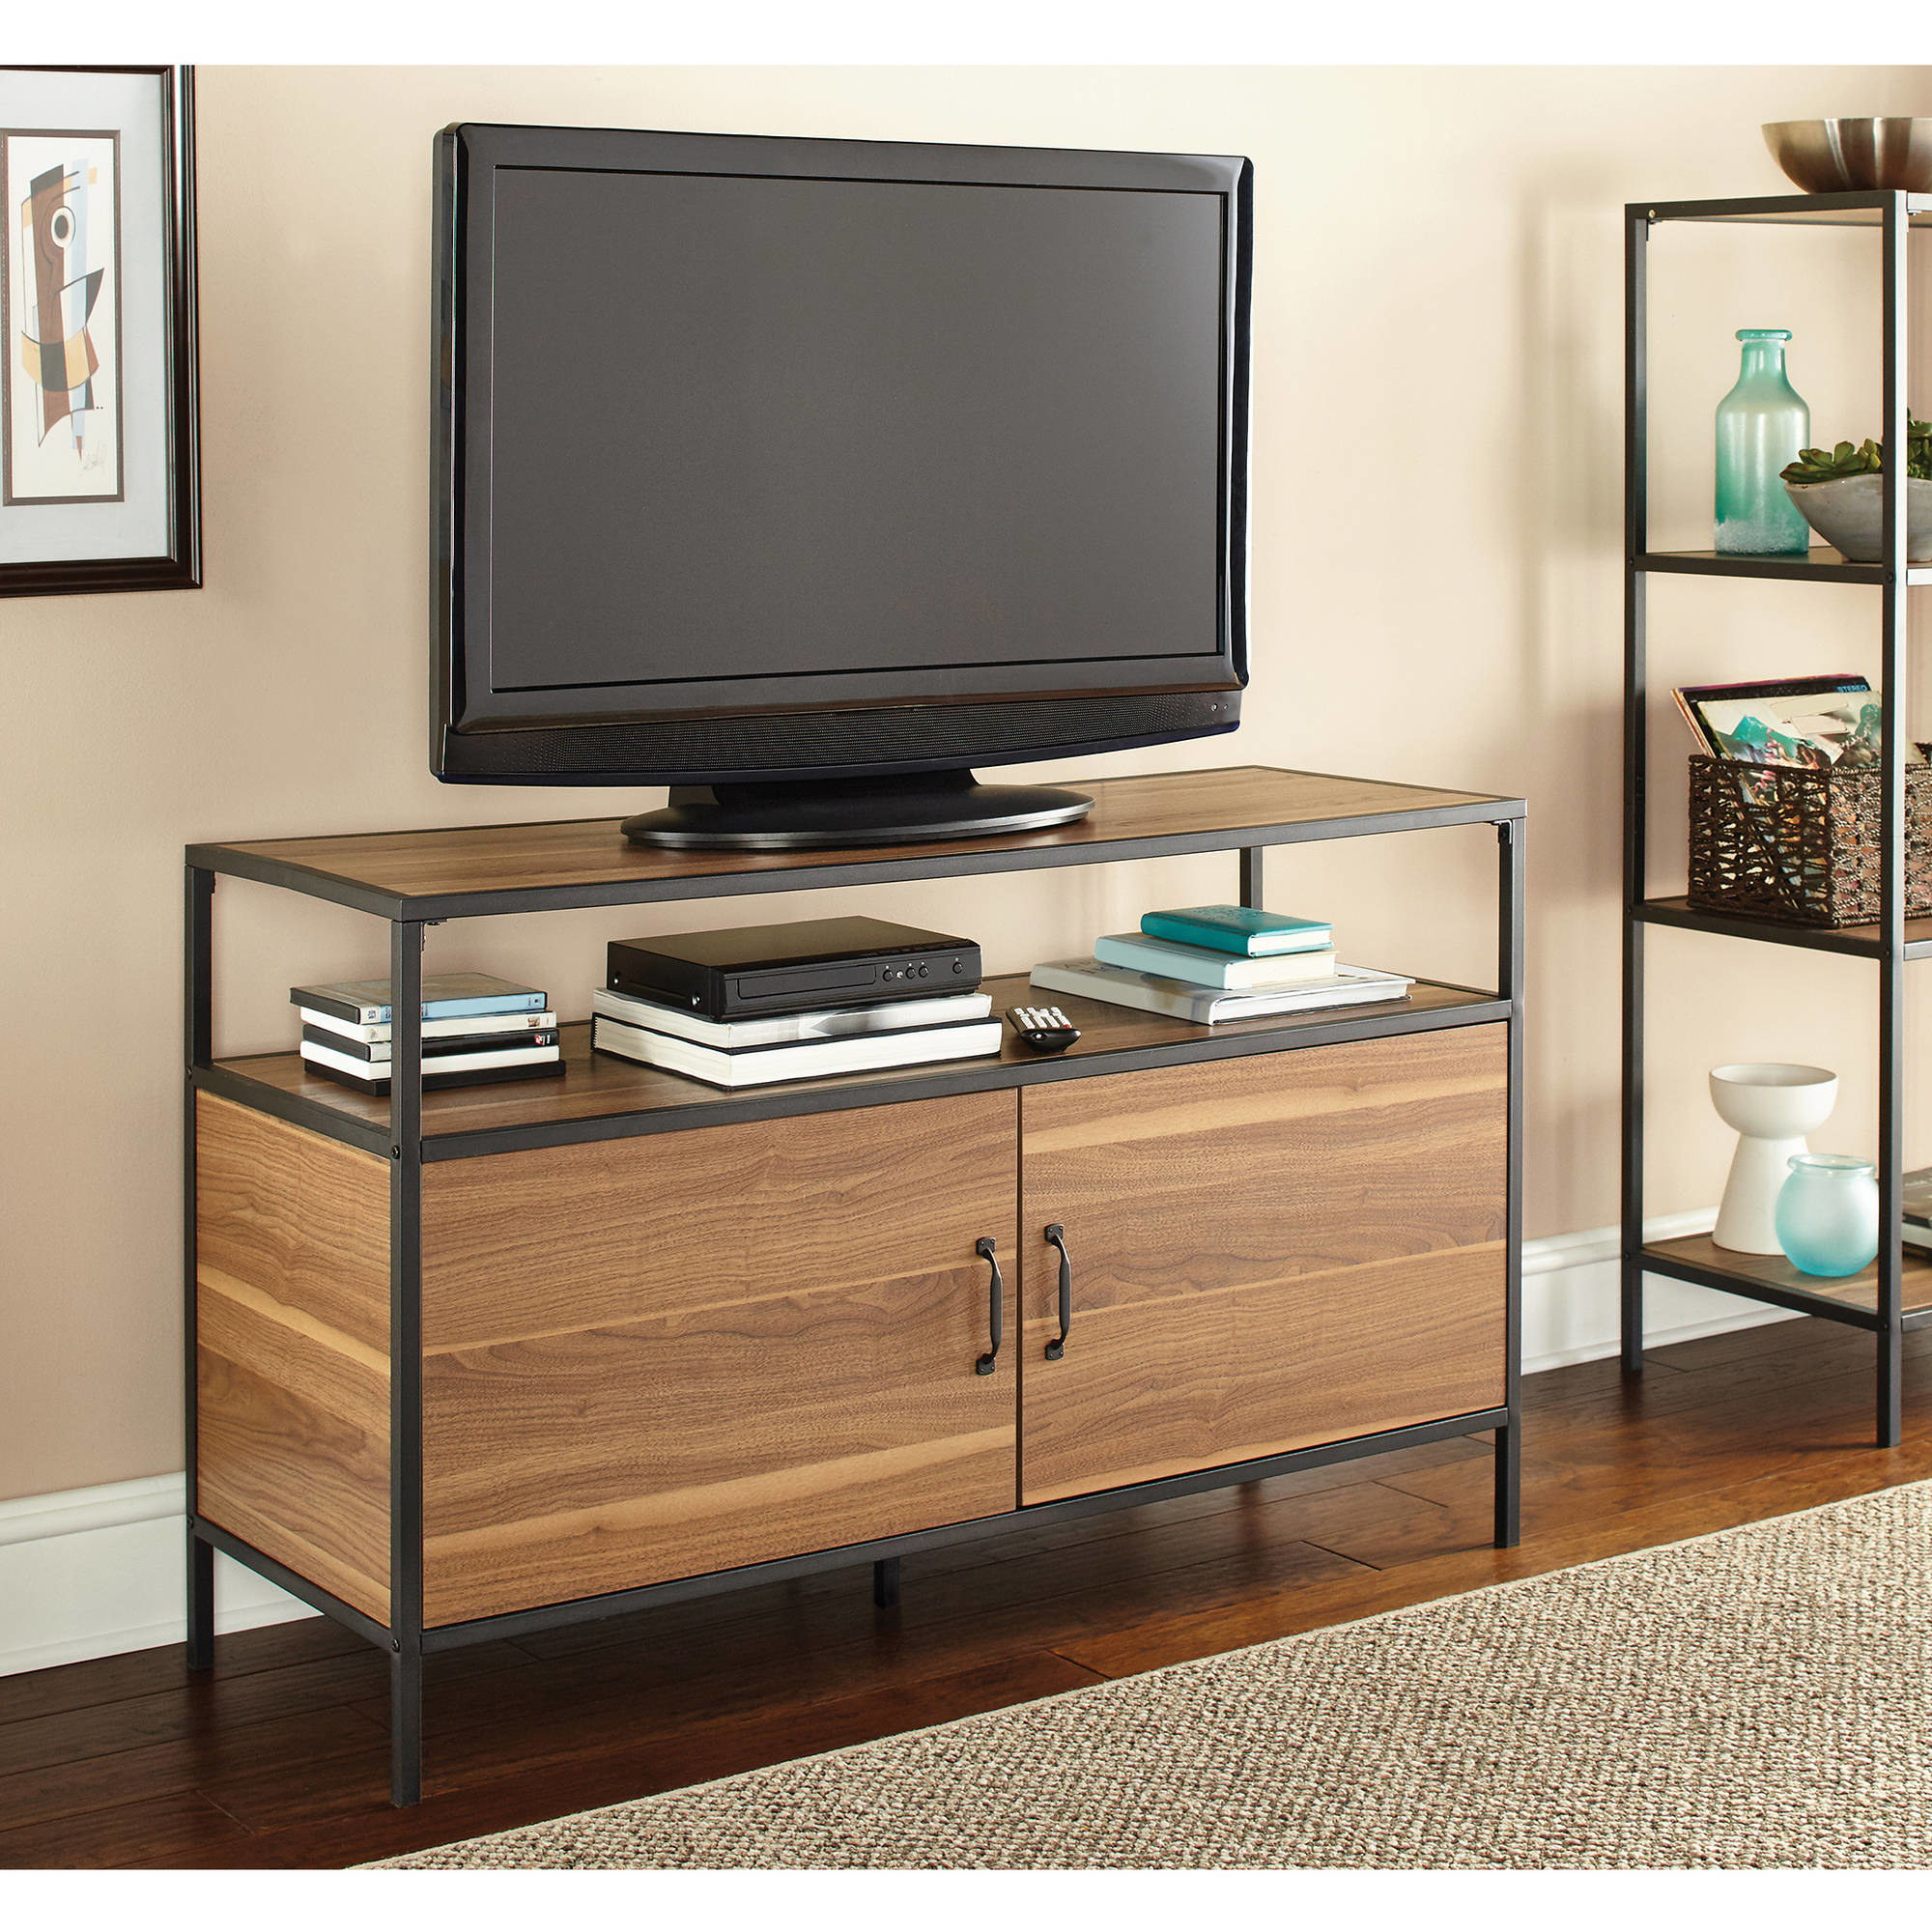 the tv stand with two cabinets and a shelf